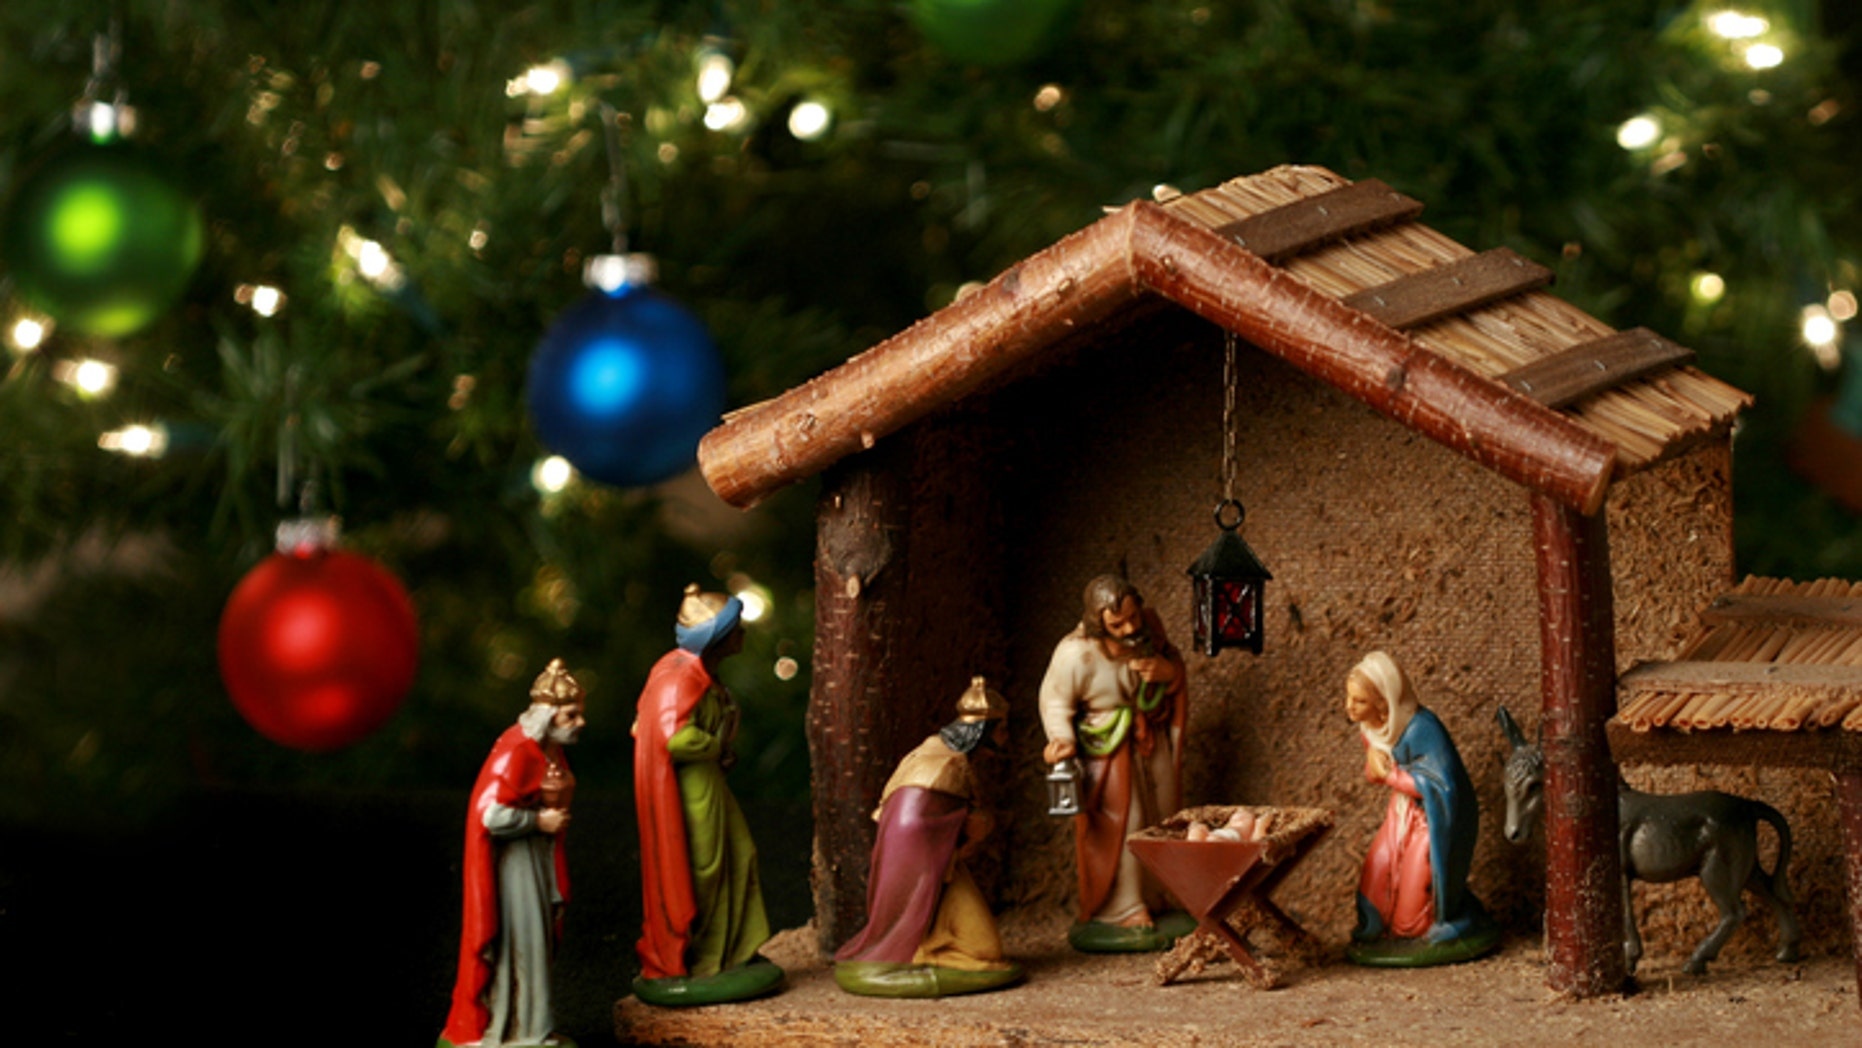 nativity-scene.jpg?ve=1&tl=1